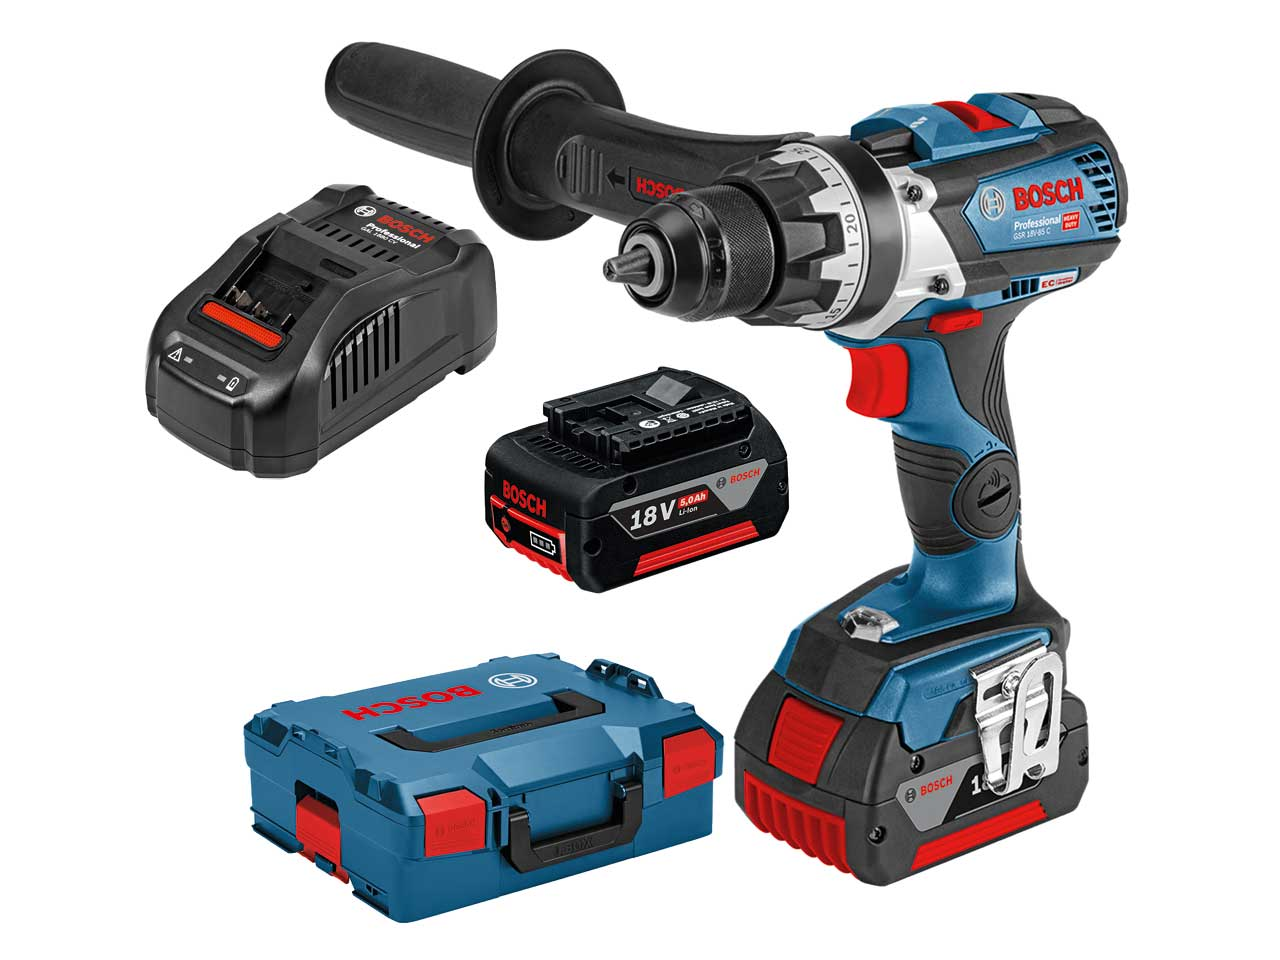 bosch gsr 18v 85 c 18v professional cordless drill driver kit ebay. Black Bedroom Furniture Sets. Home Design Ideas